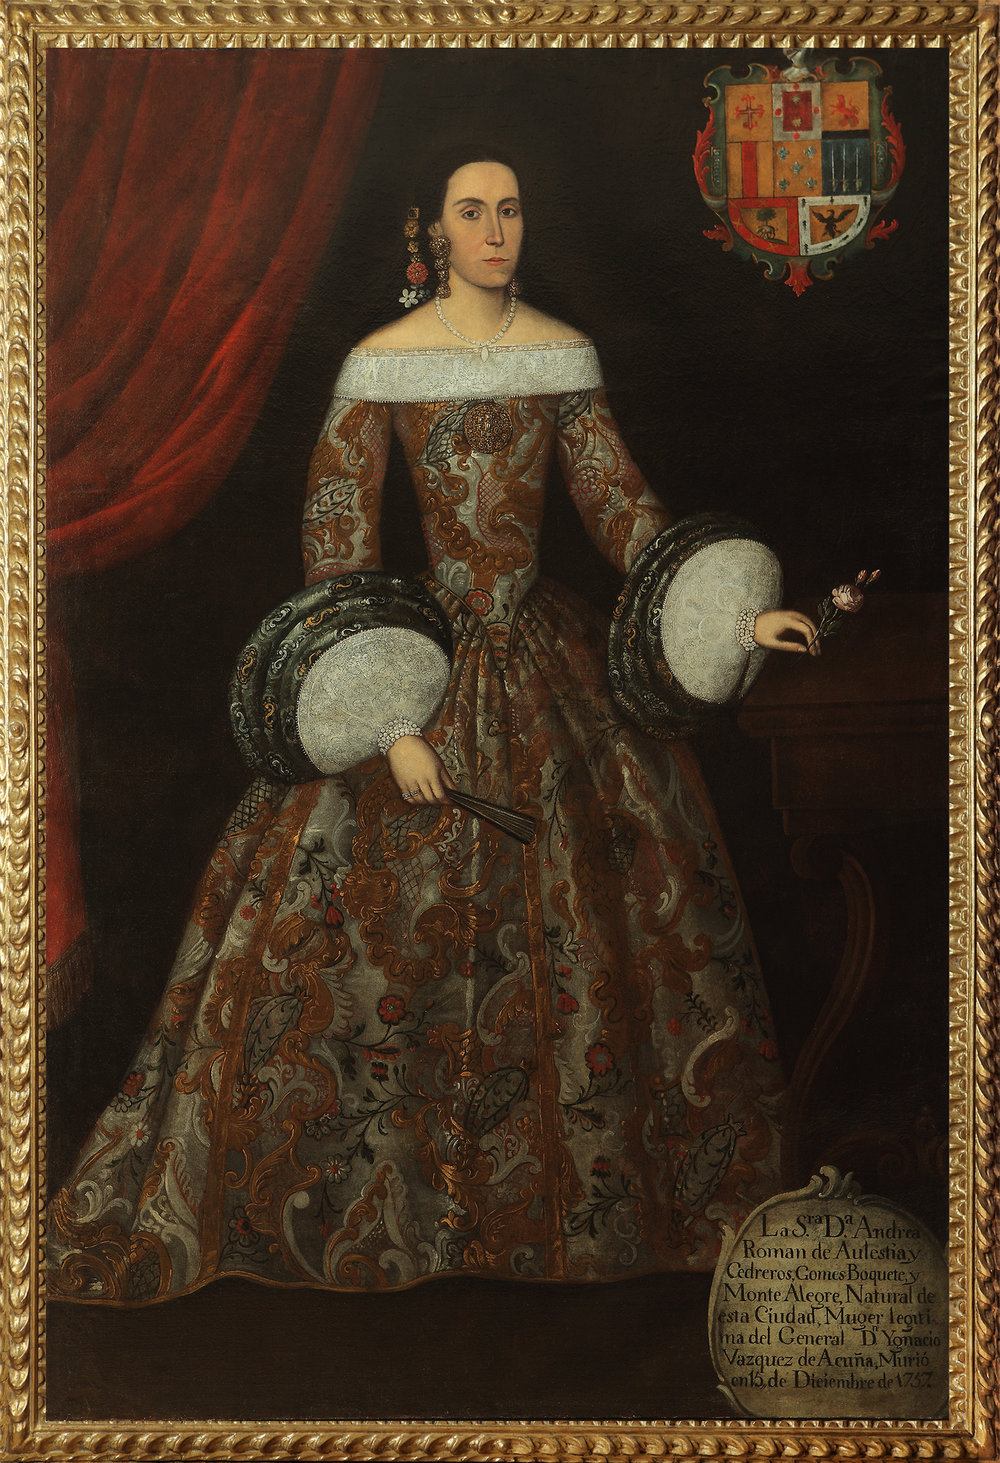 Robert Simon Fine Art is pleased to announce its recent sale of a Spanish Colonial work from the Eighteenth Century:The Portrait of Dona Andrea Roman de Aulestia y Cedreros -